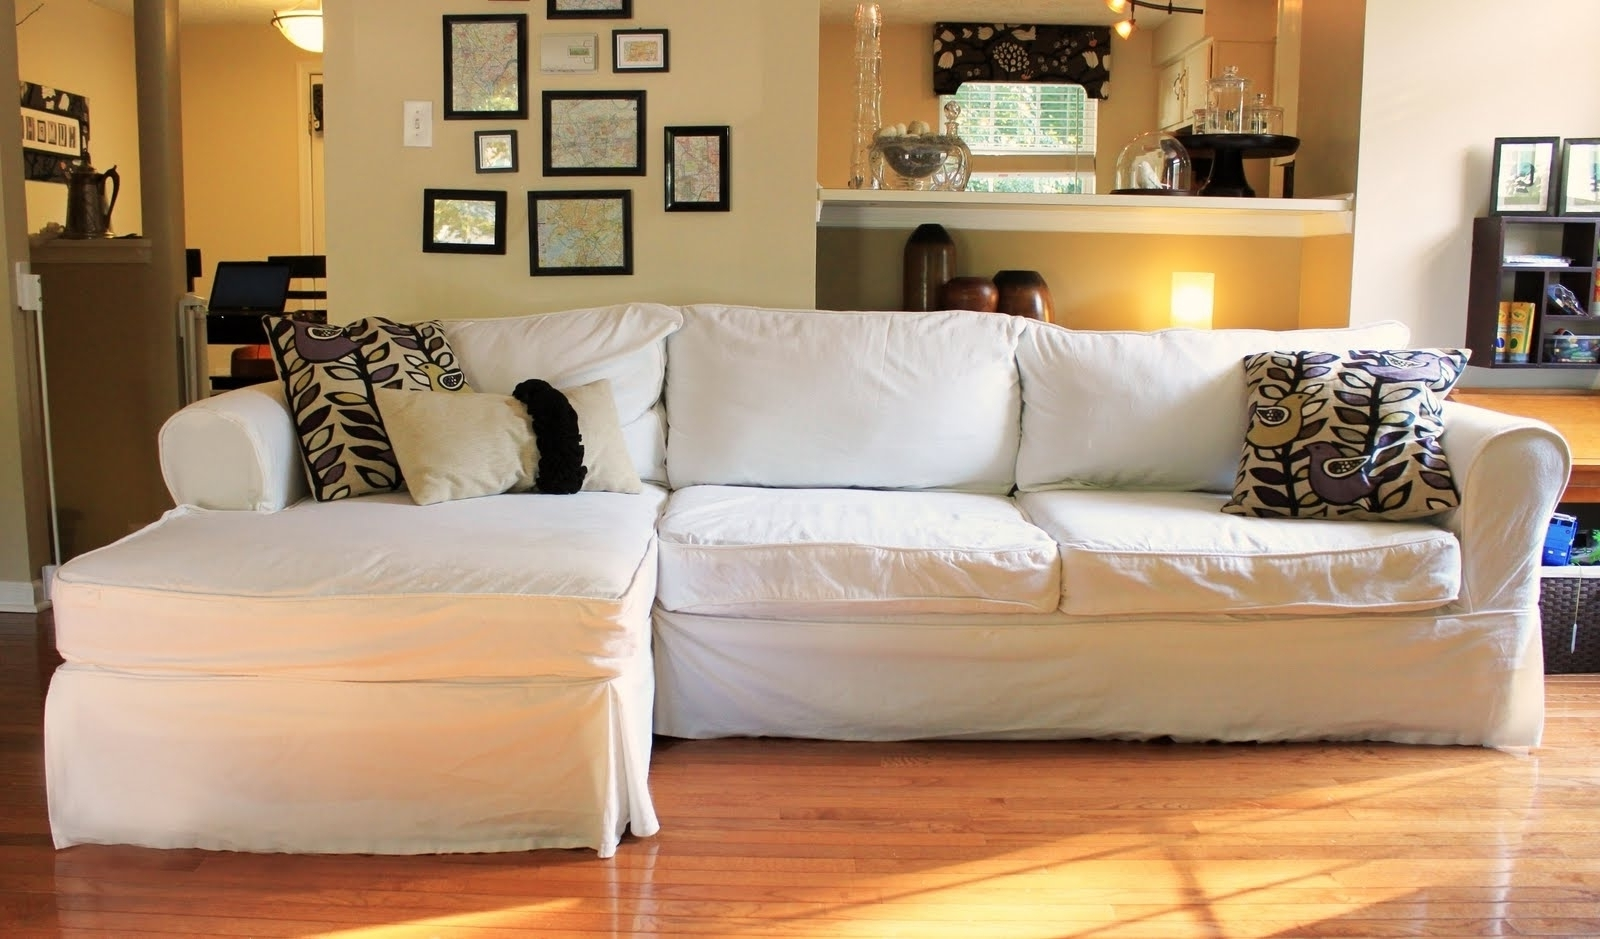 Slipcovers For Sectional Sofas With Chaise With Favorite Sectional Sofa Design: Awesome Stretch Slipcovers For Sectional (View 11 of 15)